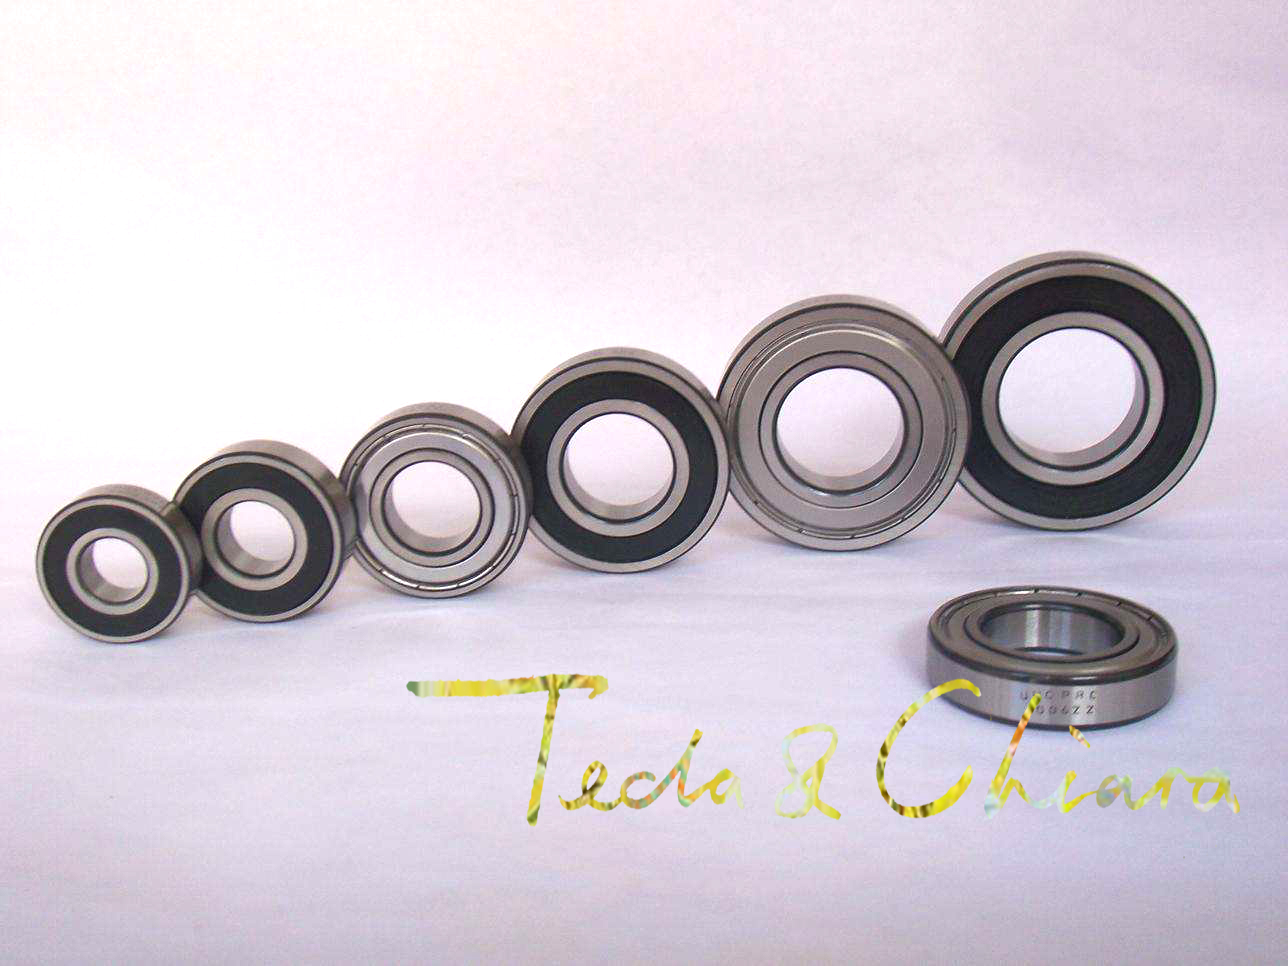 6704 6704ZZ 6704RS 6704-2Z 6704Z 6704-2RS ZZ RS RZ 2RZ Deep Groove Ball Bearings 20 x 27 x 4mm High Quality free shipping 25x47x12mm deep groove ball bearings 6005 zz 2z 6005zz bearing 6005zz 6005 2rs